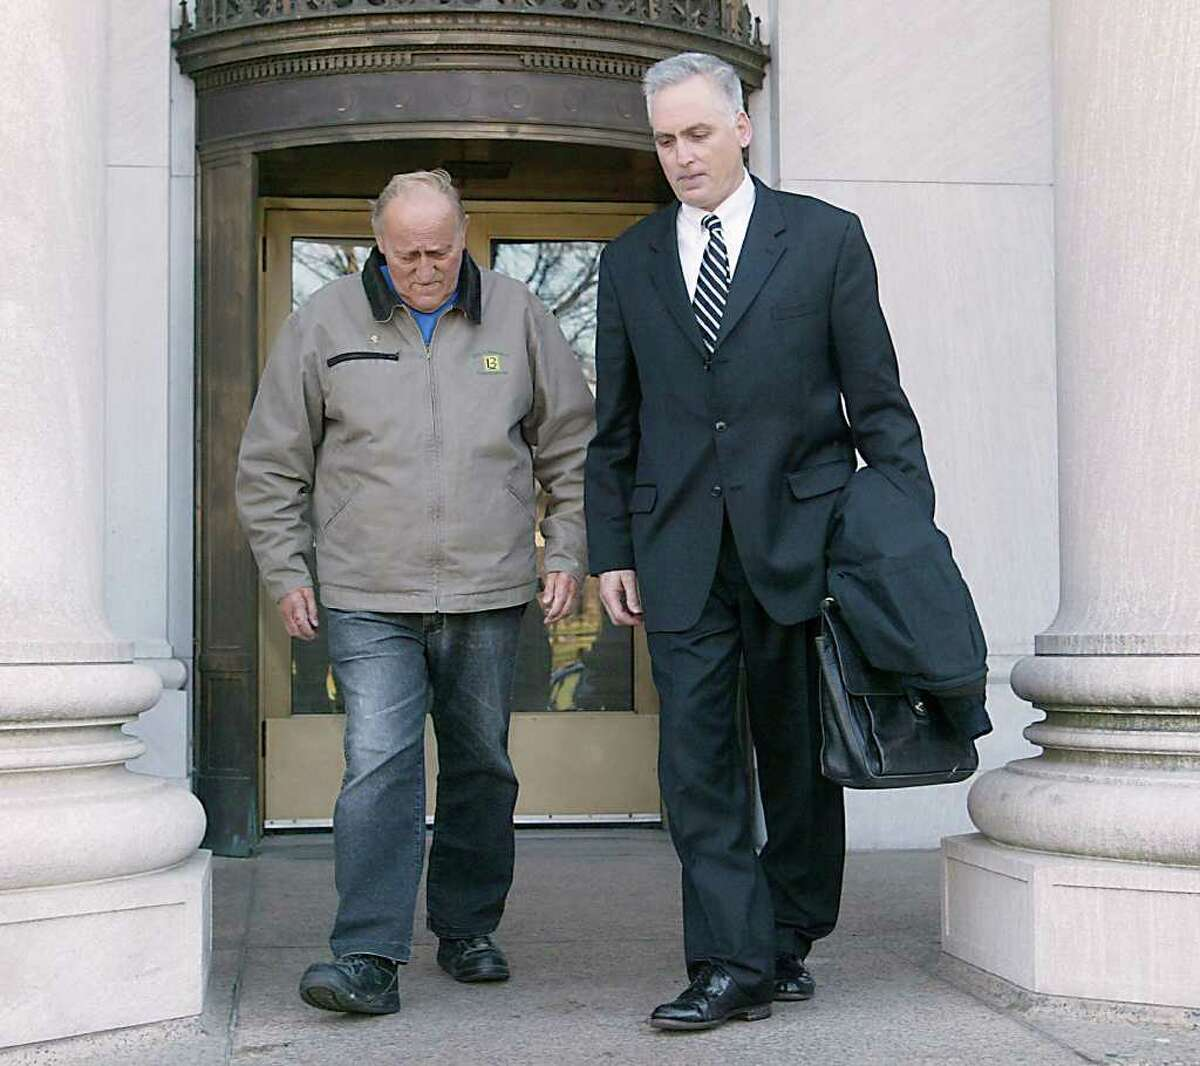 Peter Botti,Sr., father of James Botti, and his attorney Eugene Roccio leave the New Haven Federal Courthouse after being arraigned in Dec. 2008. Peter Botti will be sentenced Wednesday for his role in helping his son, Shelton developer James Botti, commit mail fraud and currency violations. Peter Botti is 83 years old and dying, but federal prosecutors are urging a federal judge to impose prison time and send a message discouraging family members who cover up crimes by loved ones.